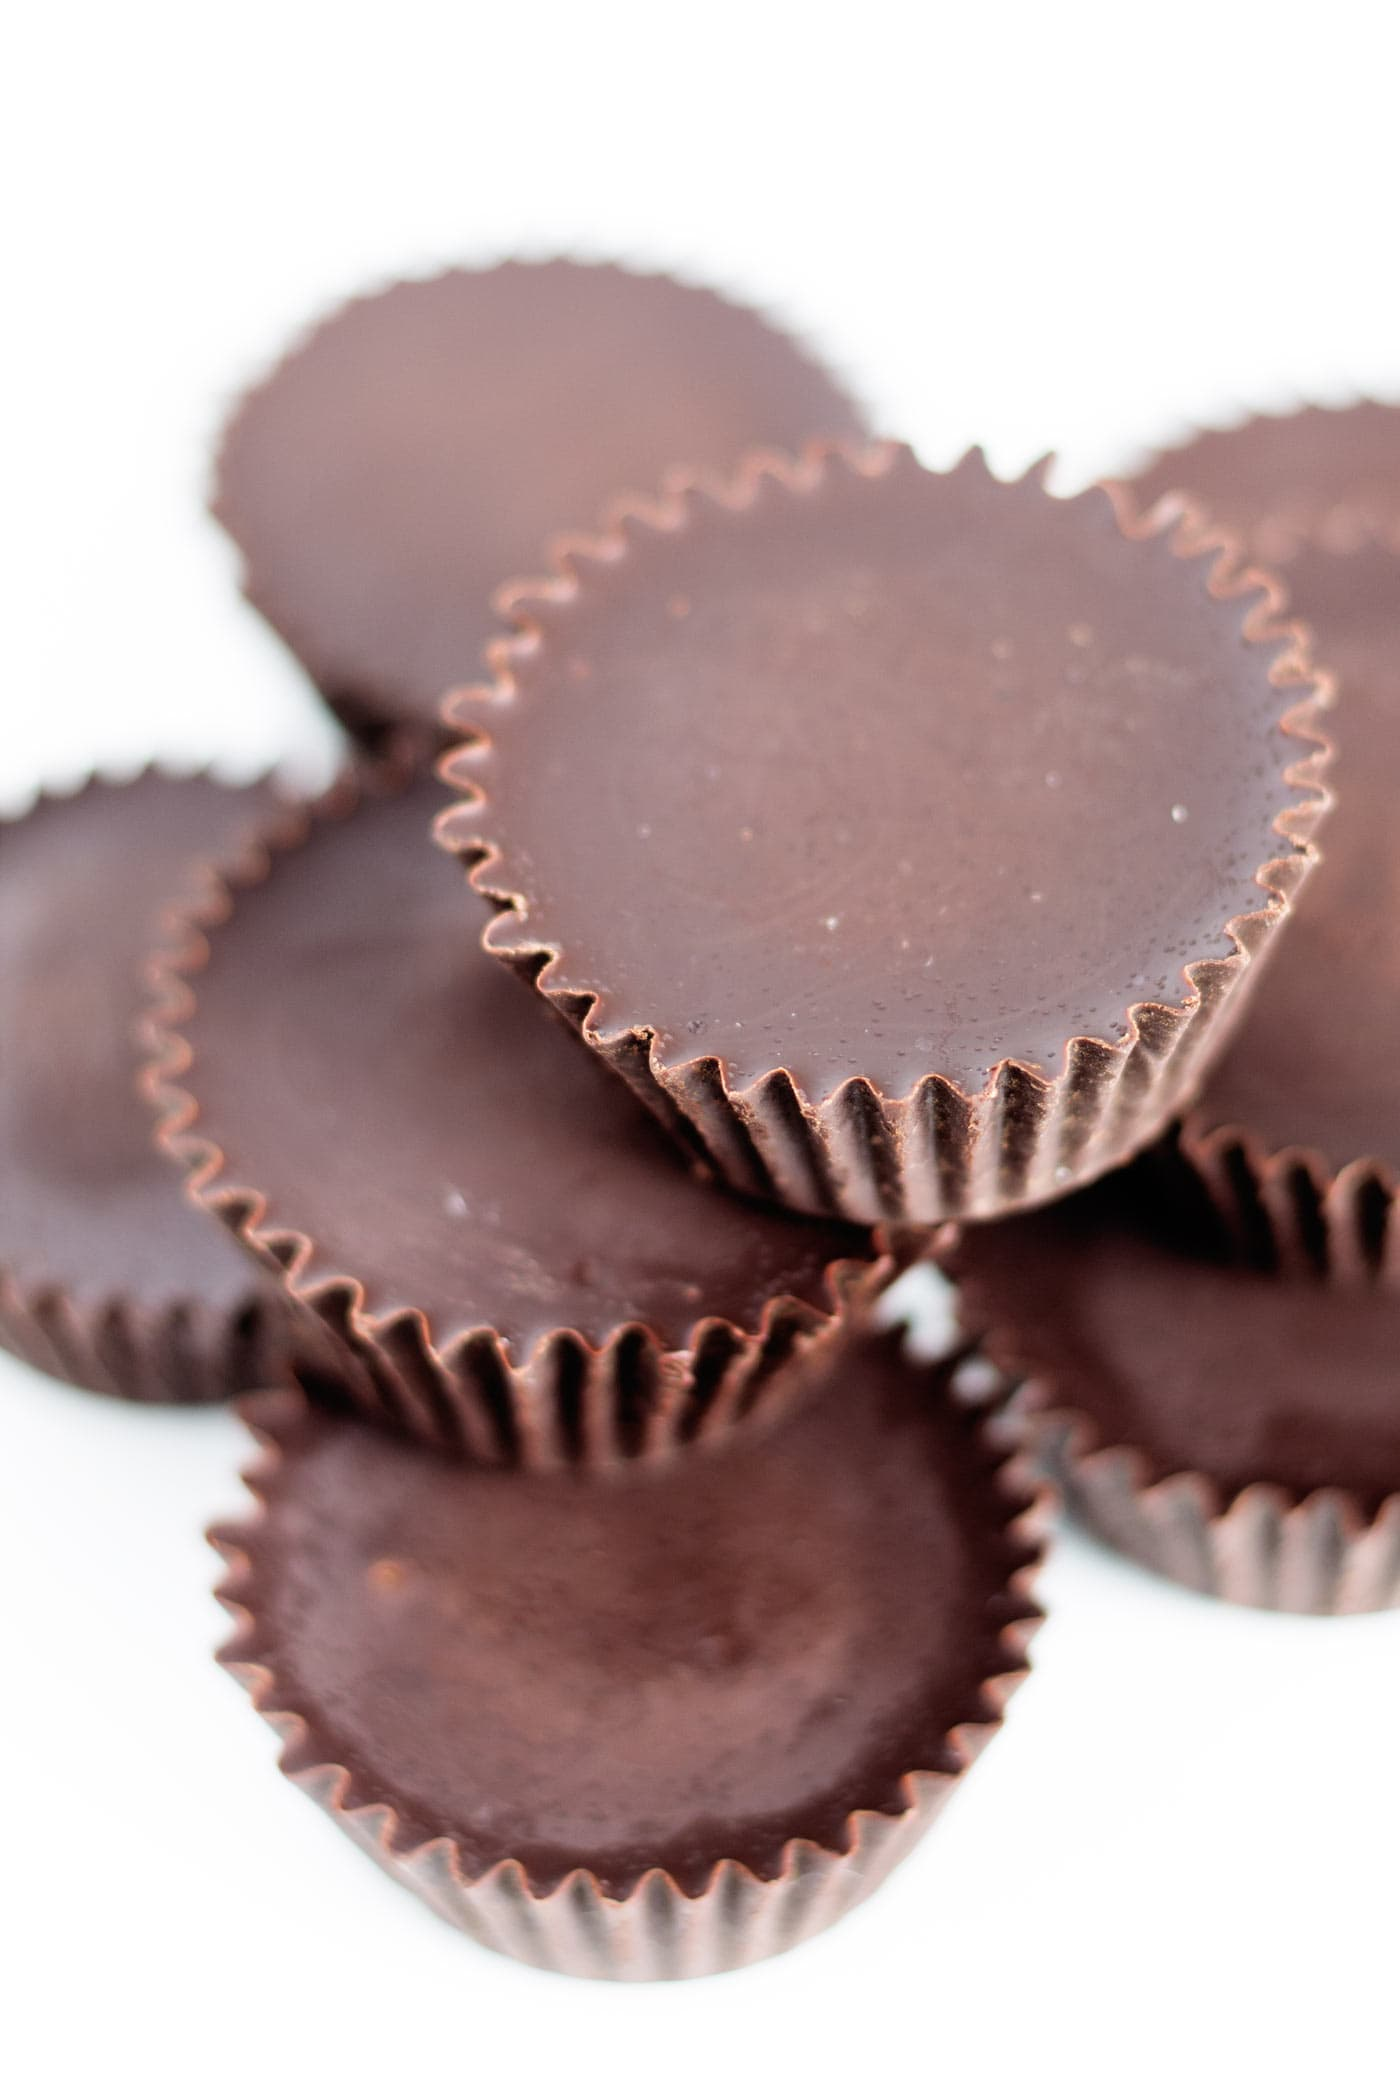 Reese's cups made healthy and spiked with pumpkin pie flavor! This fun fall recipe is easy to make, paleo, dairy free, and can be made low carb and keto!